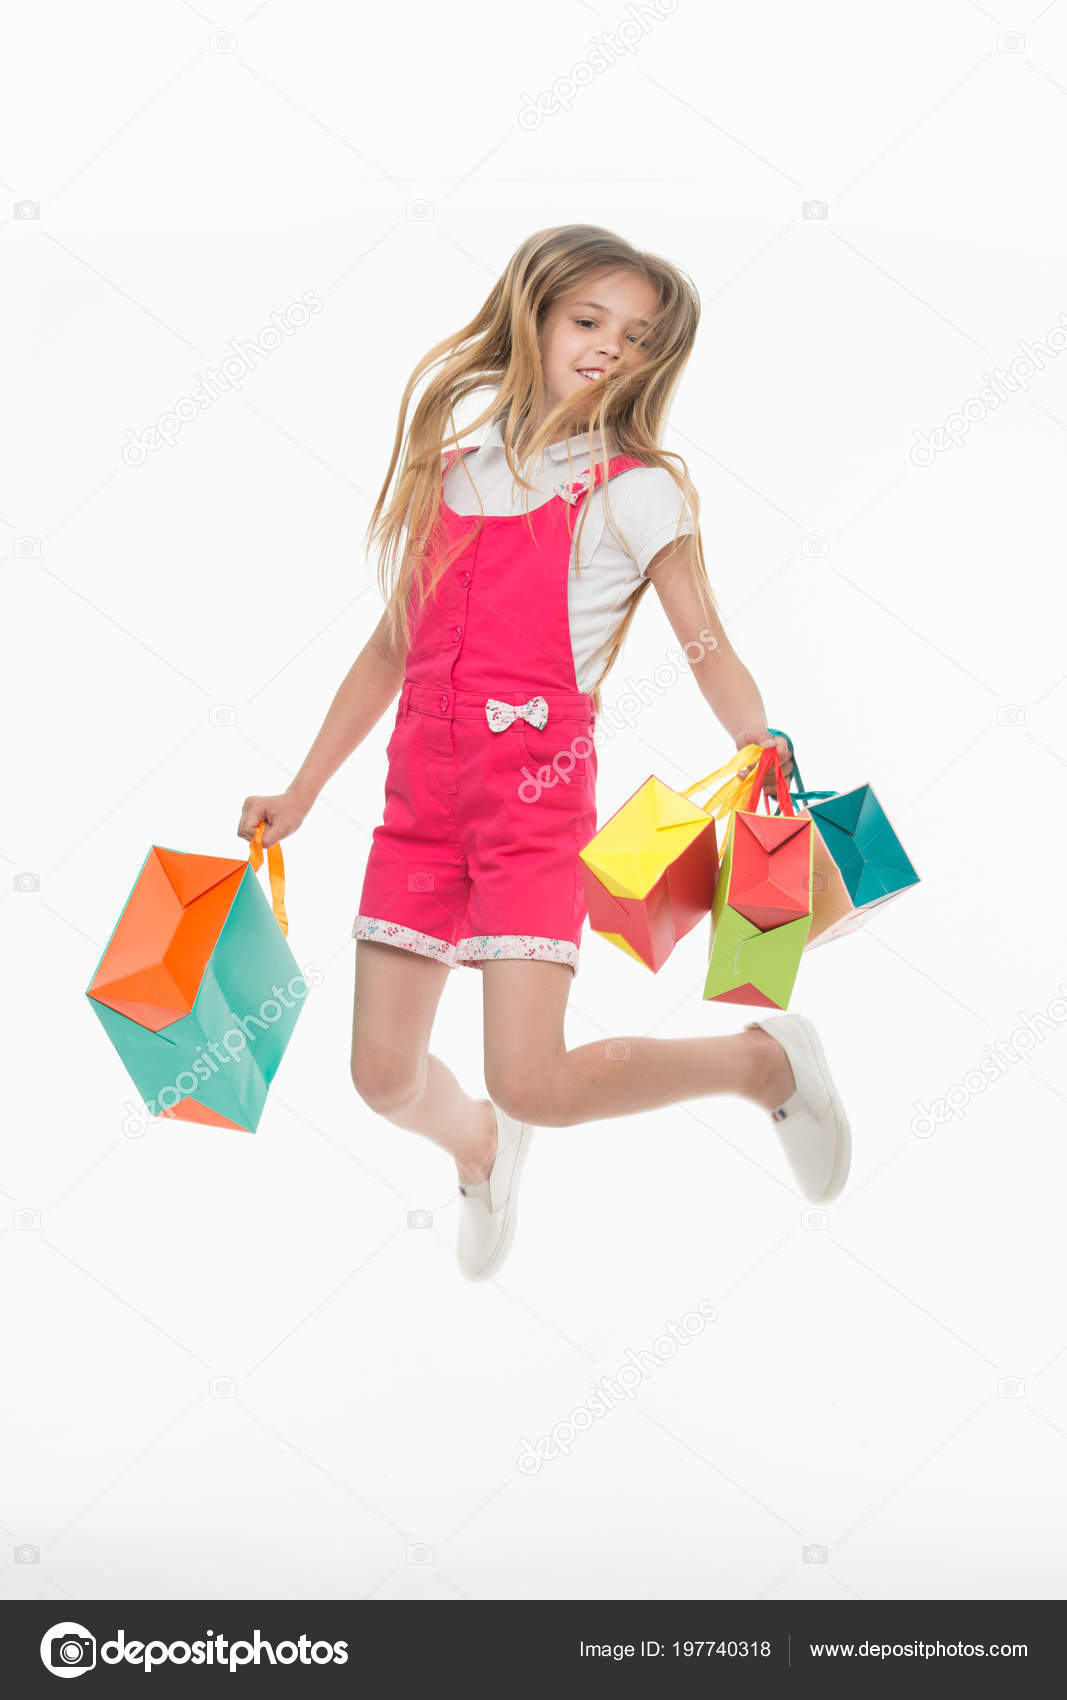 3f6b9404 Happy child jump with shopping bags isolated on white. Little girl smile  with paper bags.